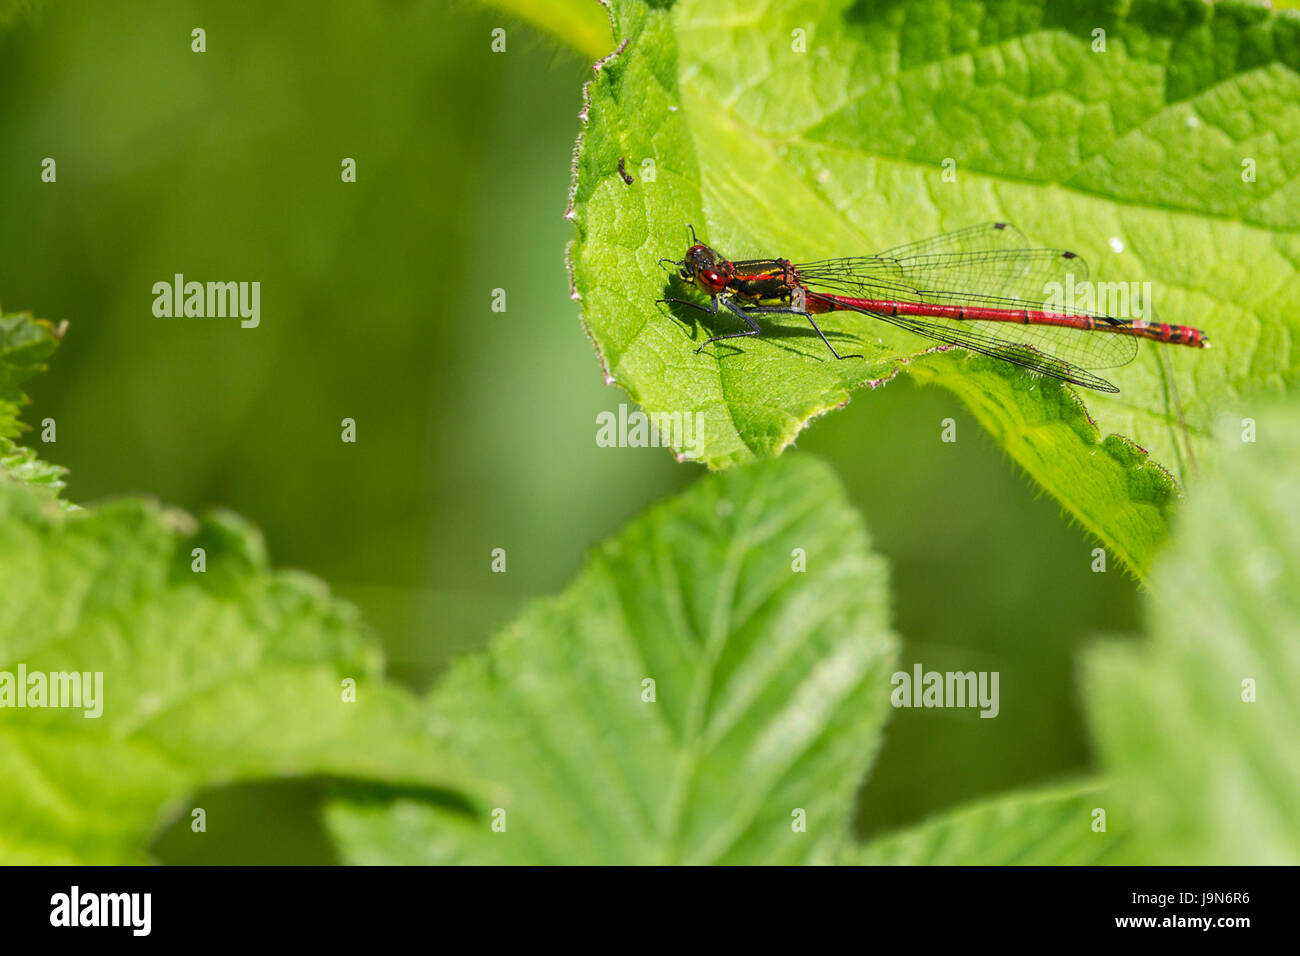 Damsel fly large red Pyrrhosoma Nymphula bright red with golden segments and black markings on abdomen resting on - Stock Image